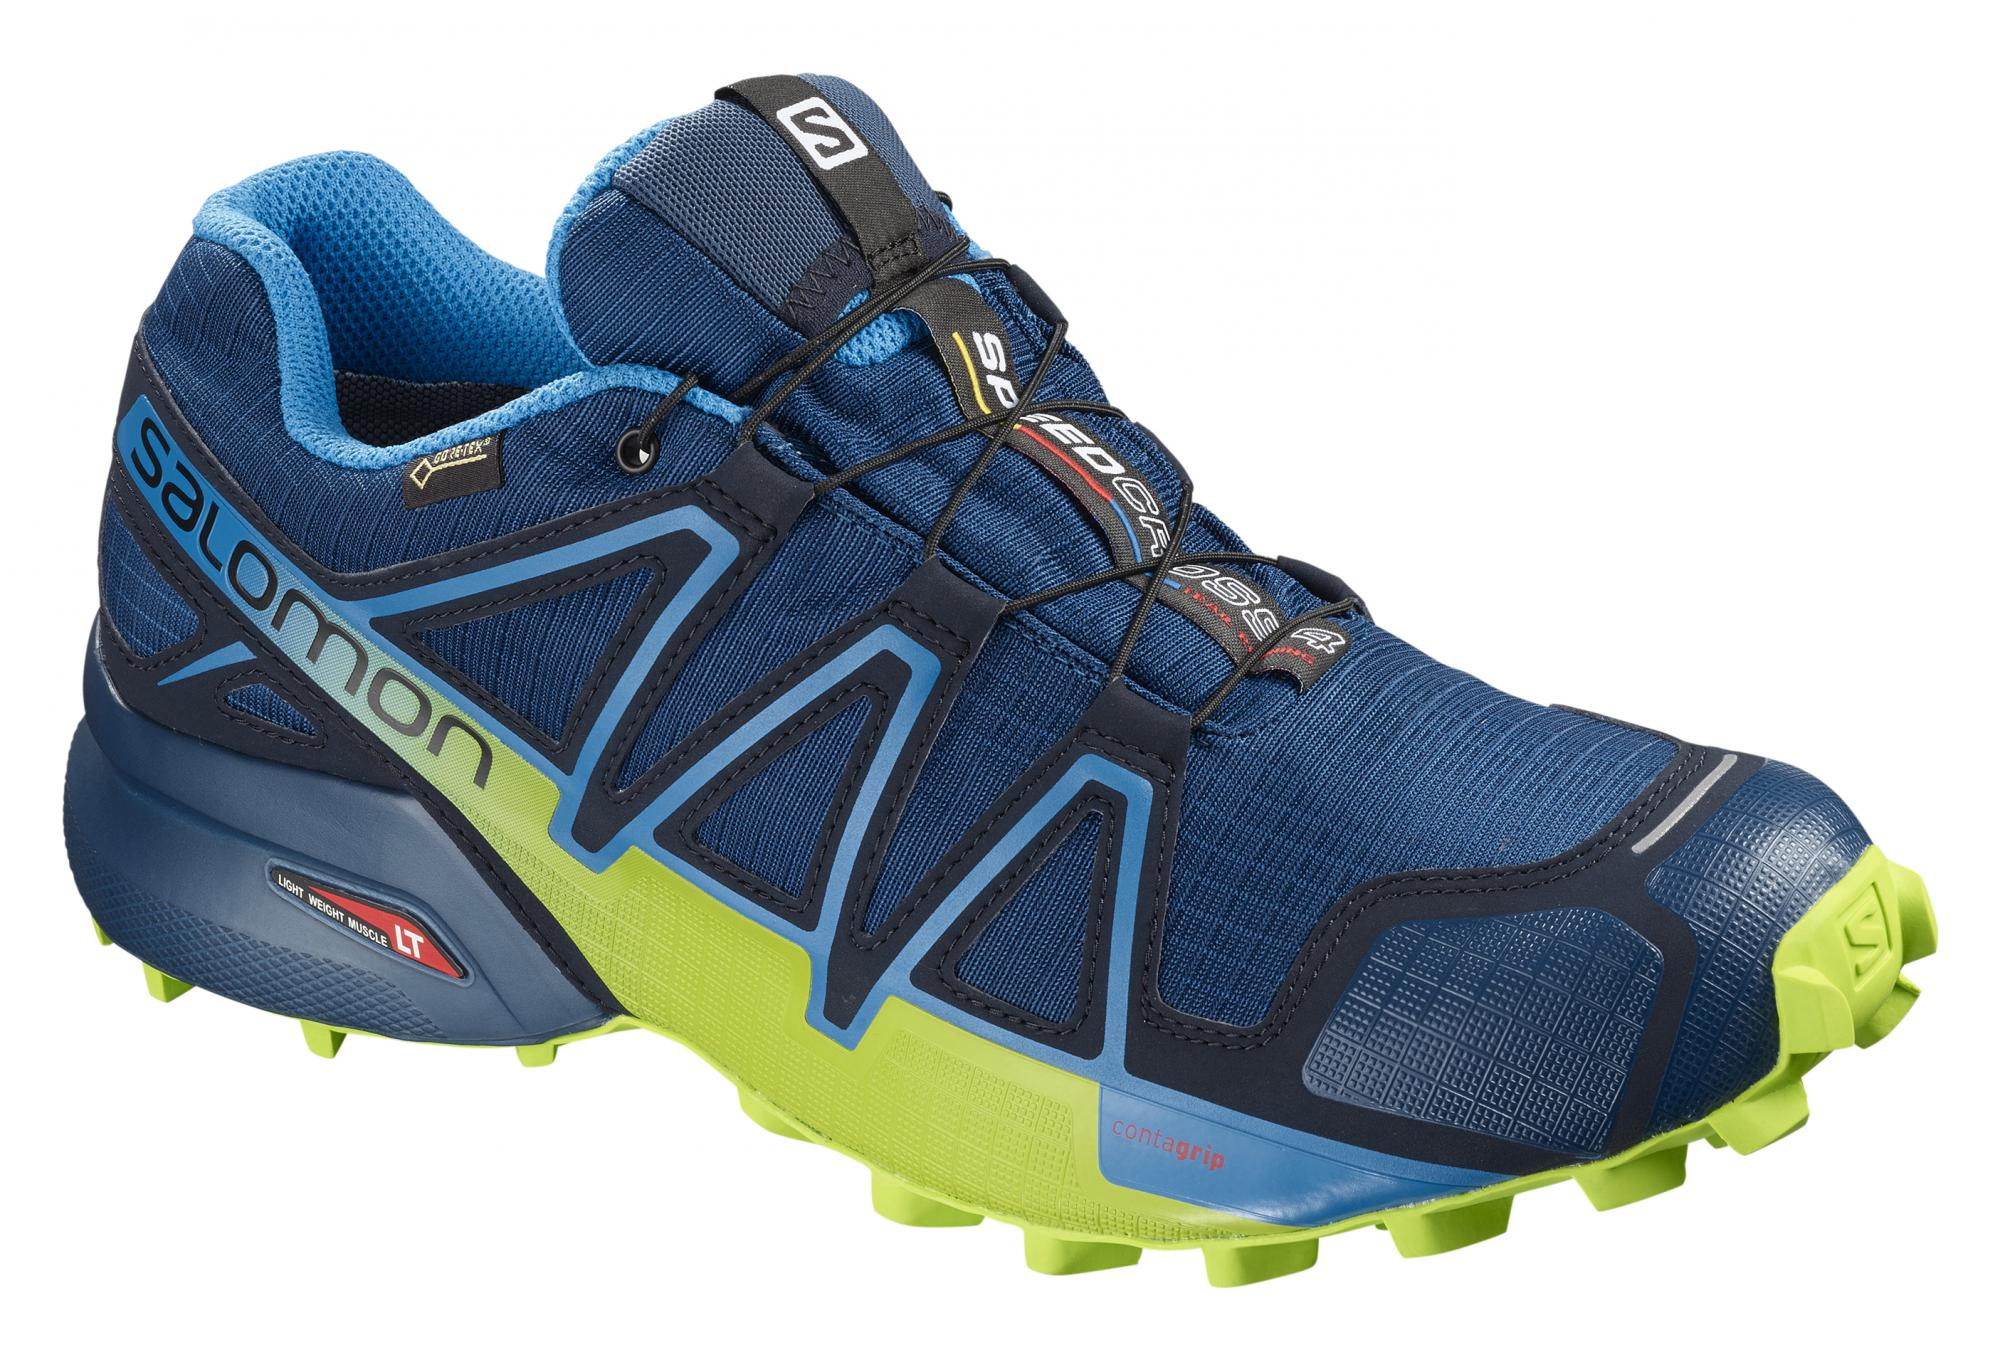 Salomon Speedcross 4 Gtx Shoes Blue Yellow